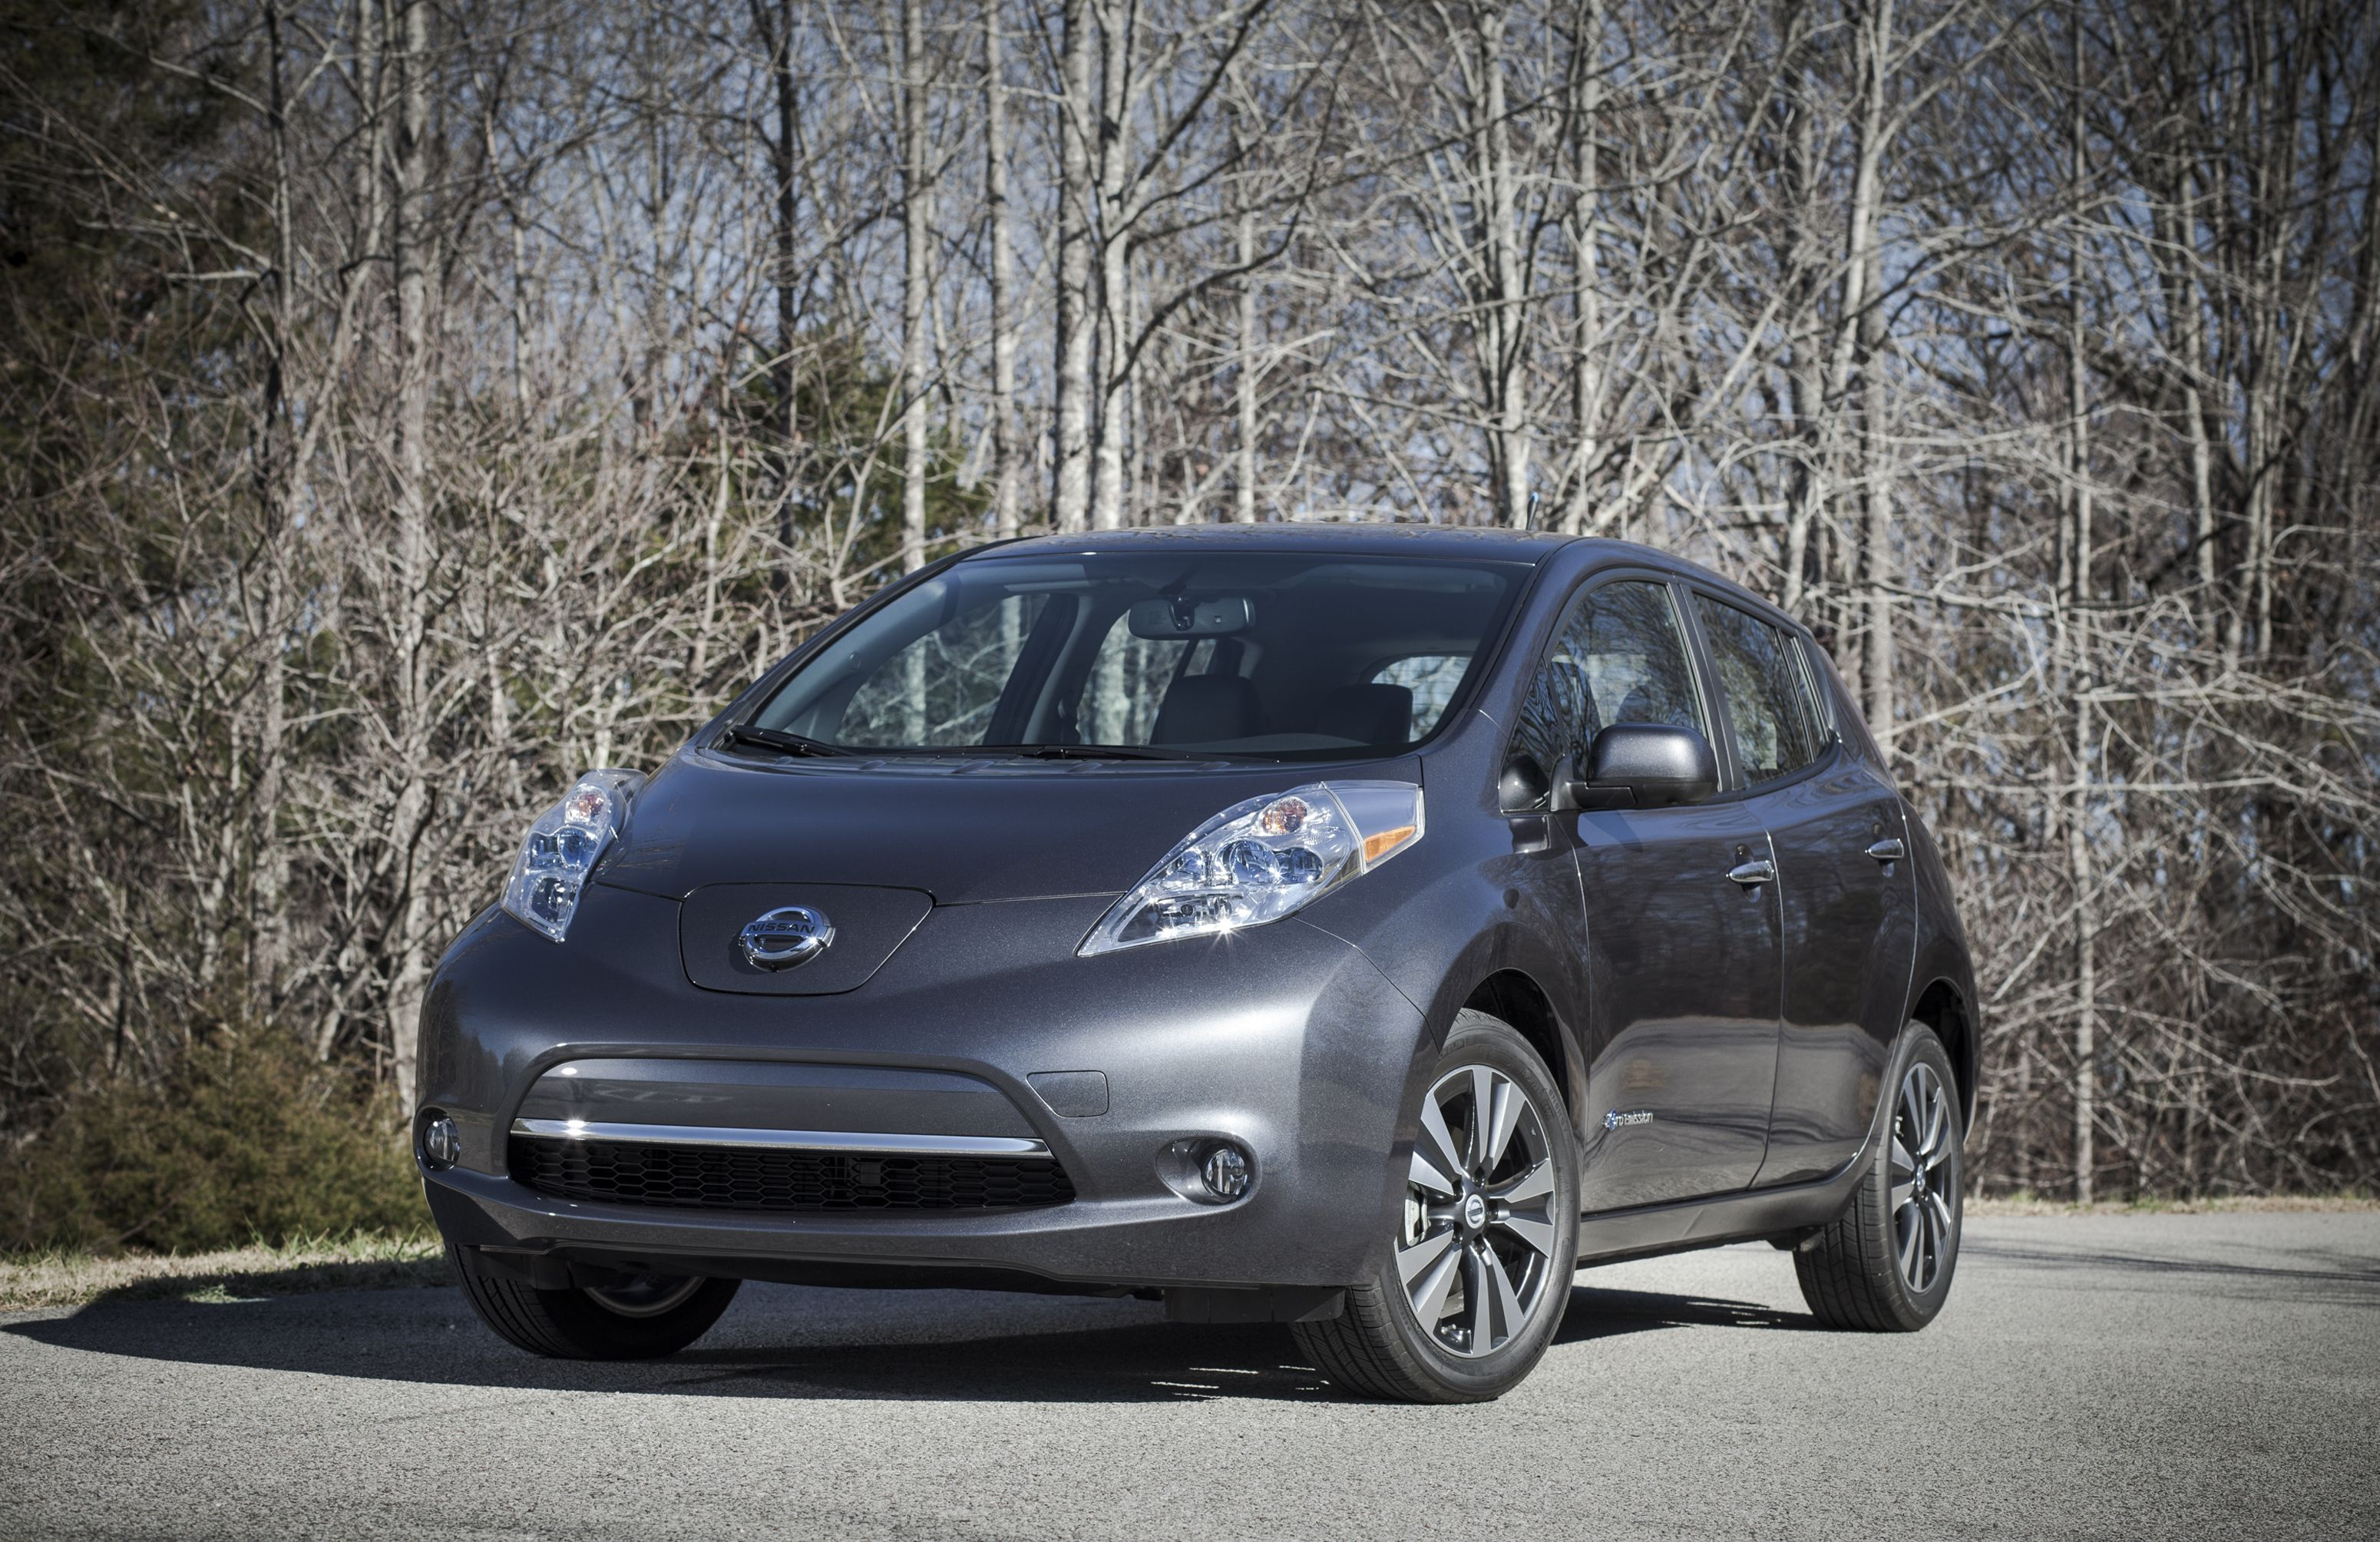 Nissan Details Updates to 2013 Leaf, Including New Entry Level